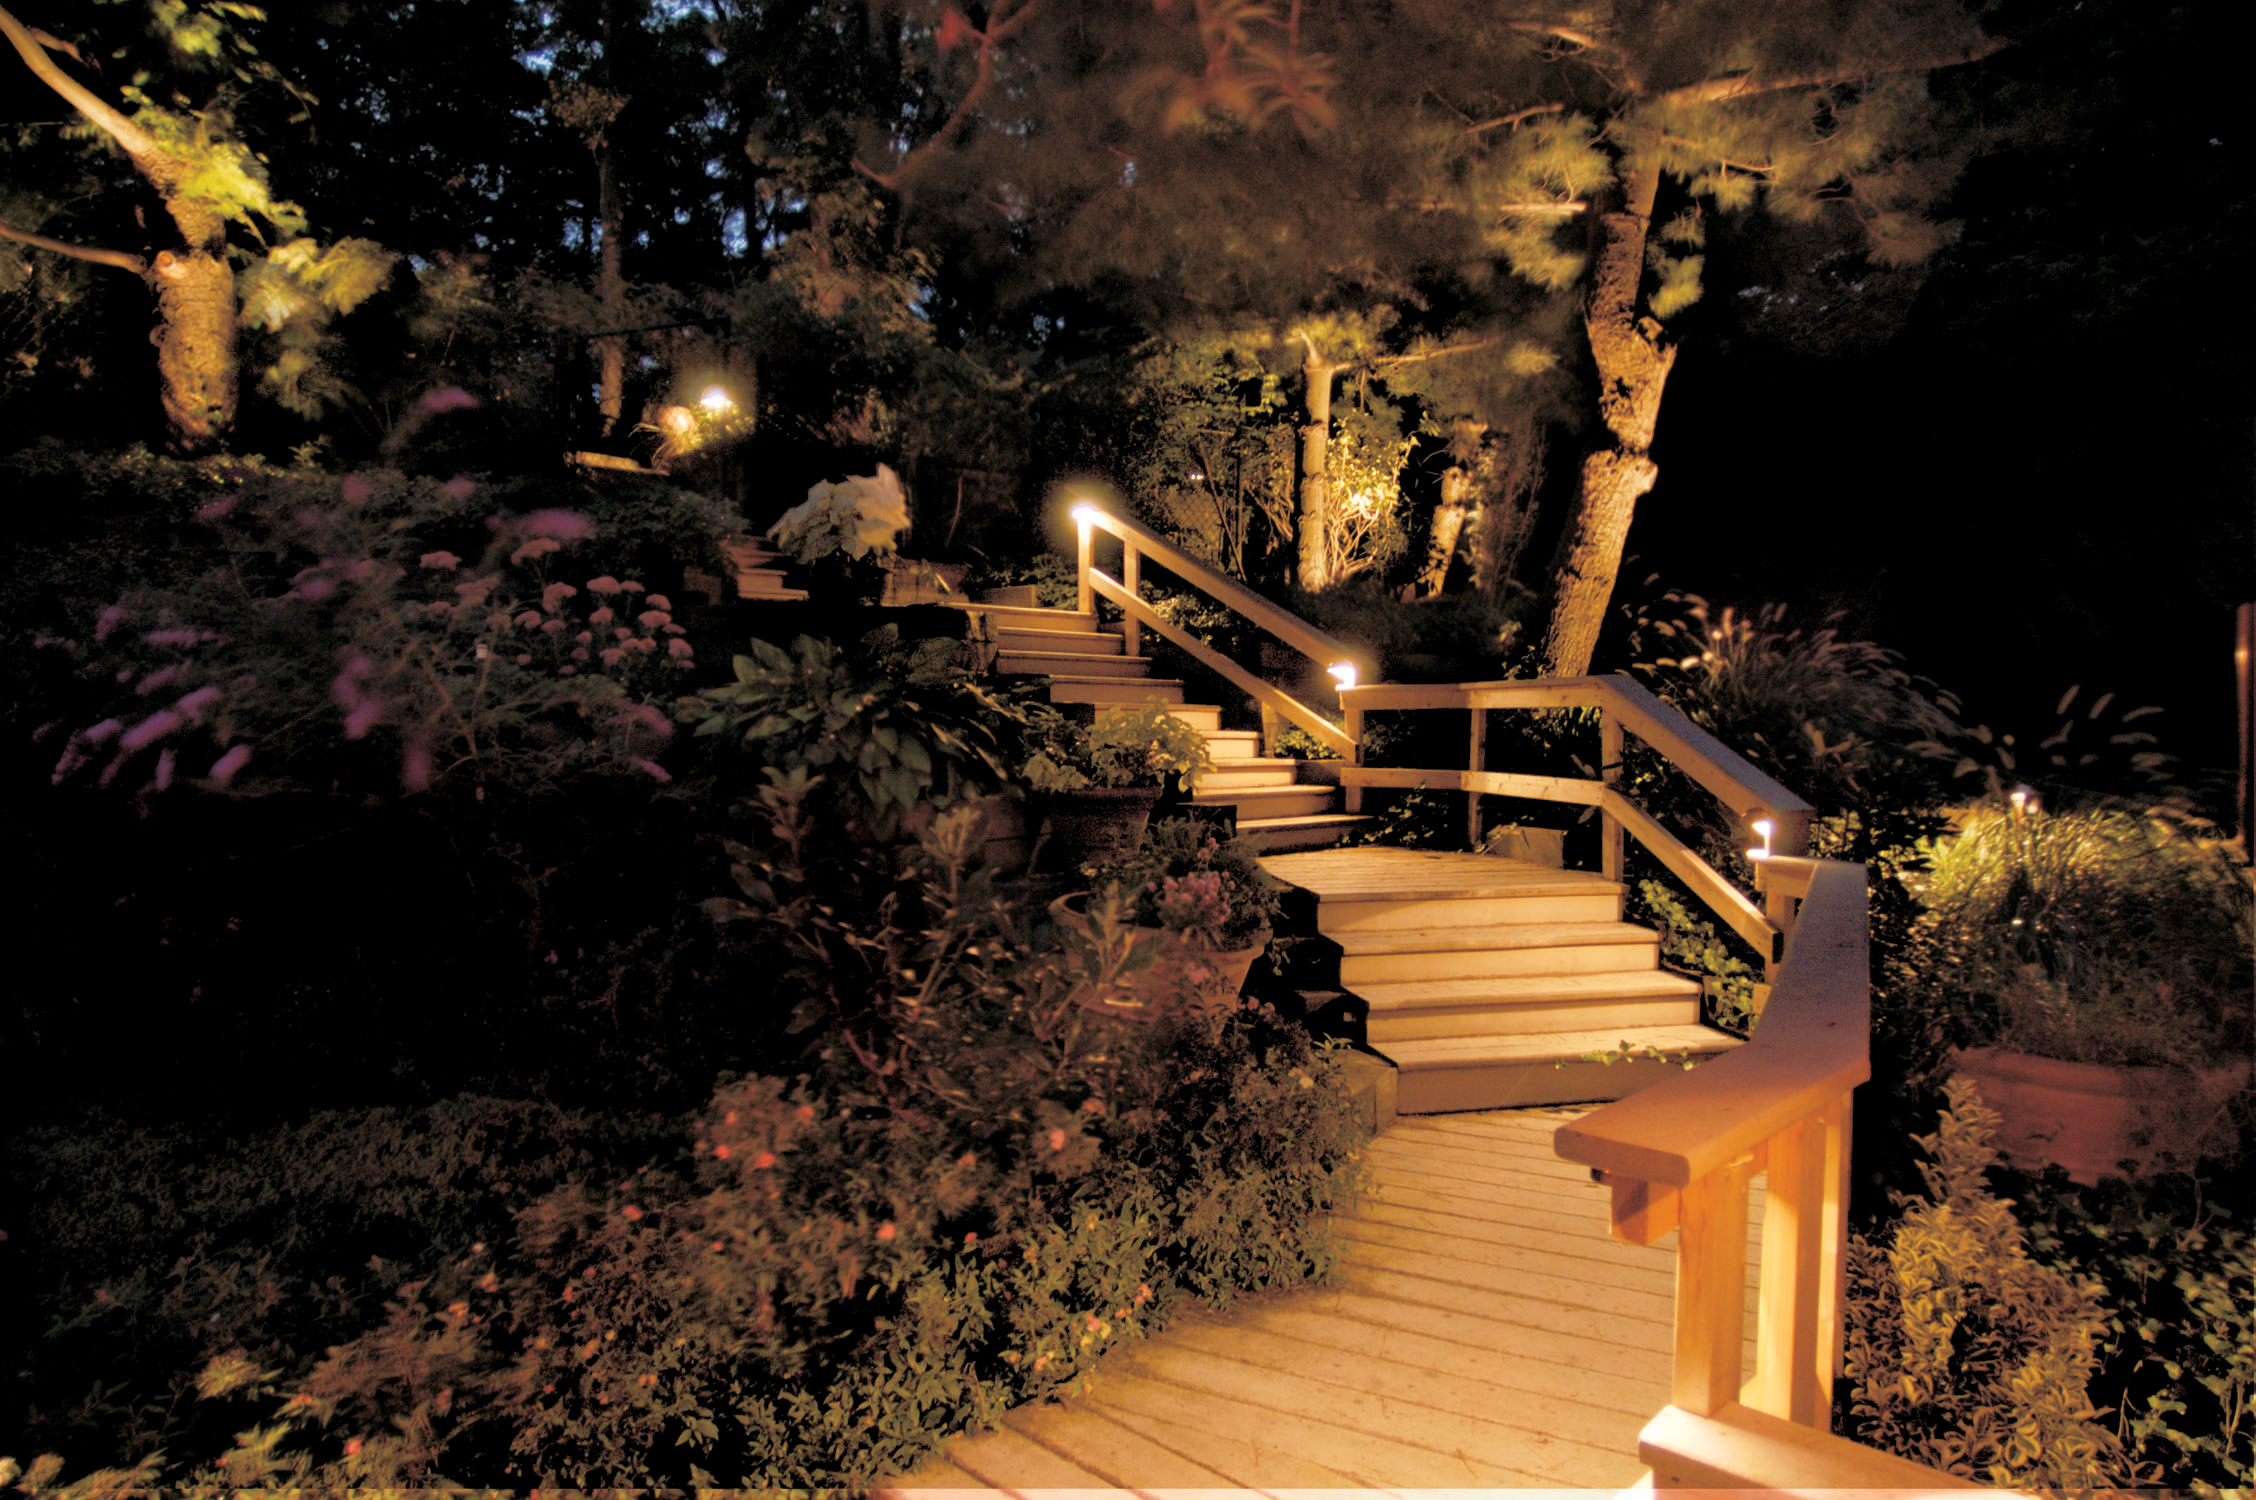 Perfect Let Our Charlotte Deck Lighting Create Beauty, Safety, And Functionality To  Your Deck Well Into The Night